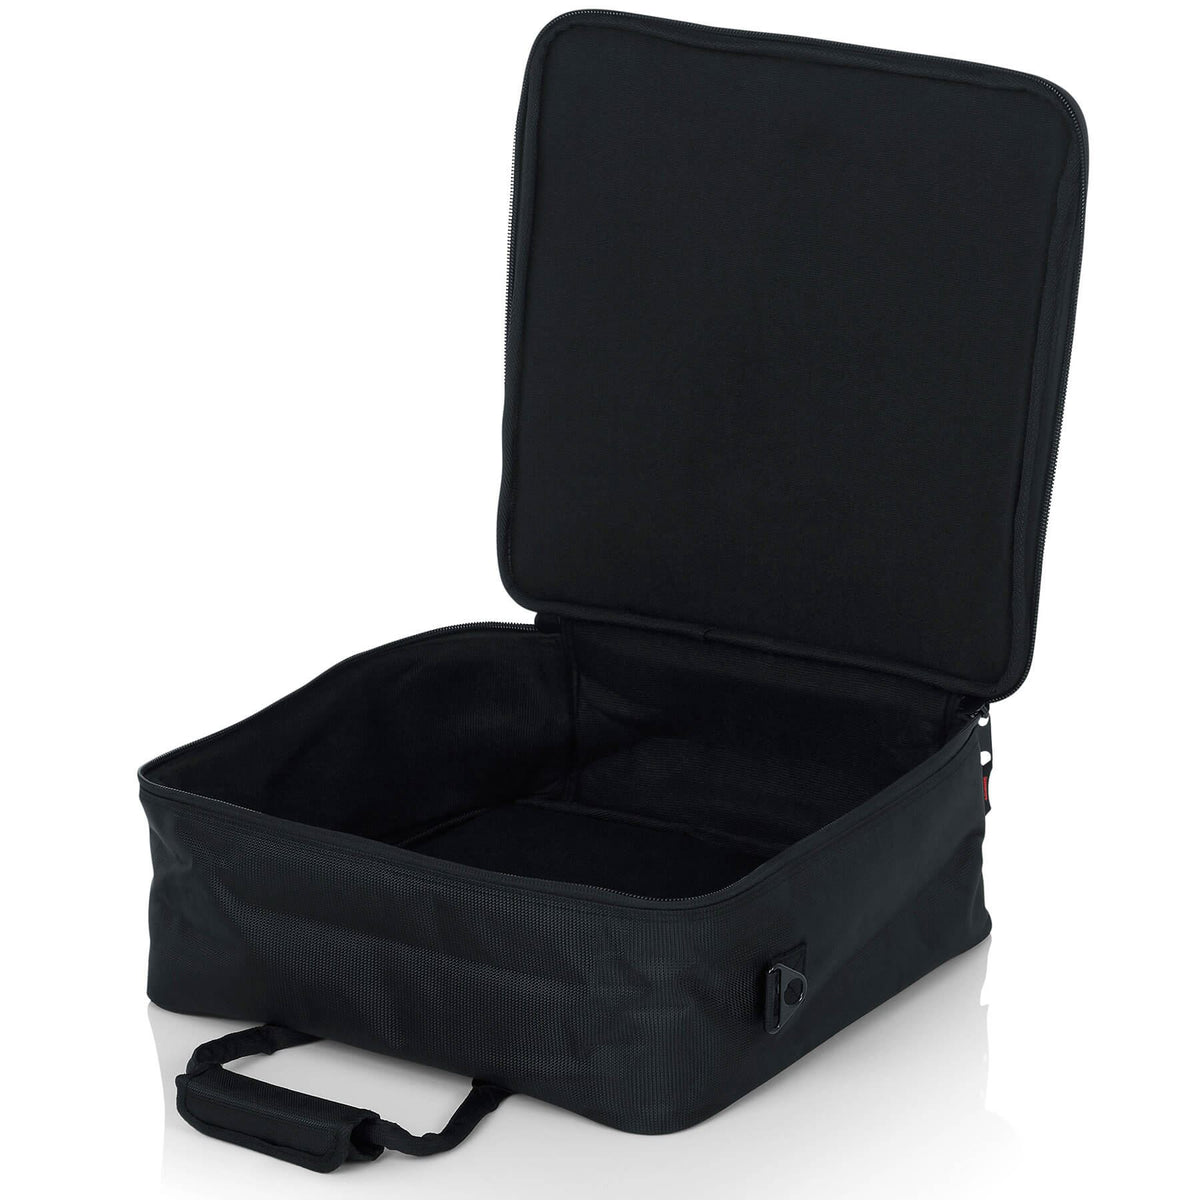 Gator Cases Padded Nylon Equipment Bag for Polycom SOUNDSTATION2